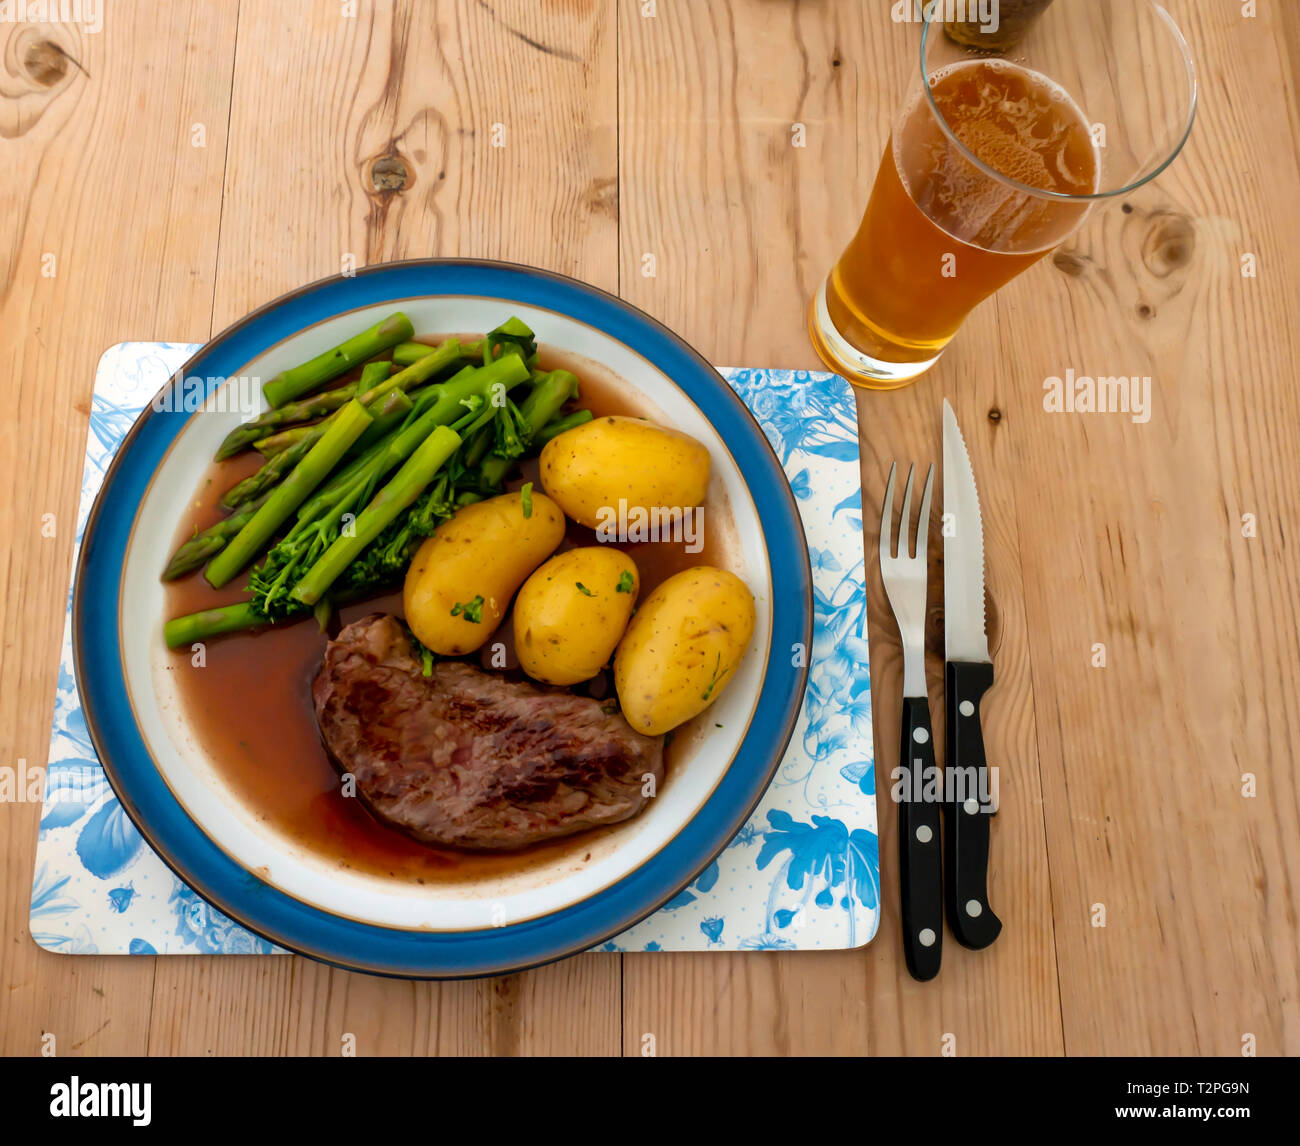 A fried Aberdeen Angus rump beef steak served with new potatoes, tenderloin broccoli and asparagus and gravy on a blue edged plate on a wooden table Stock Photo